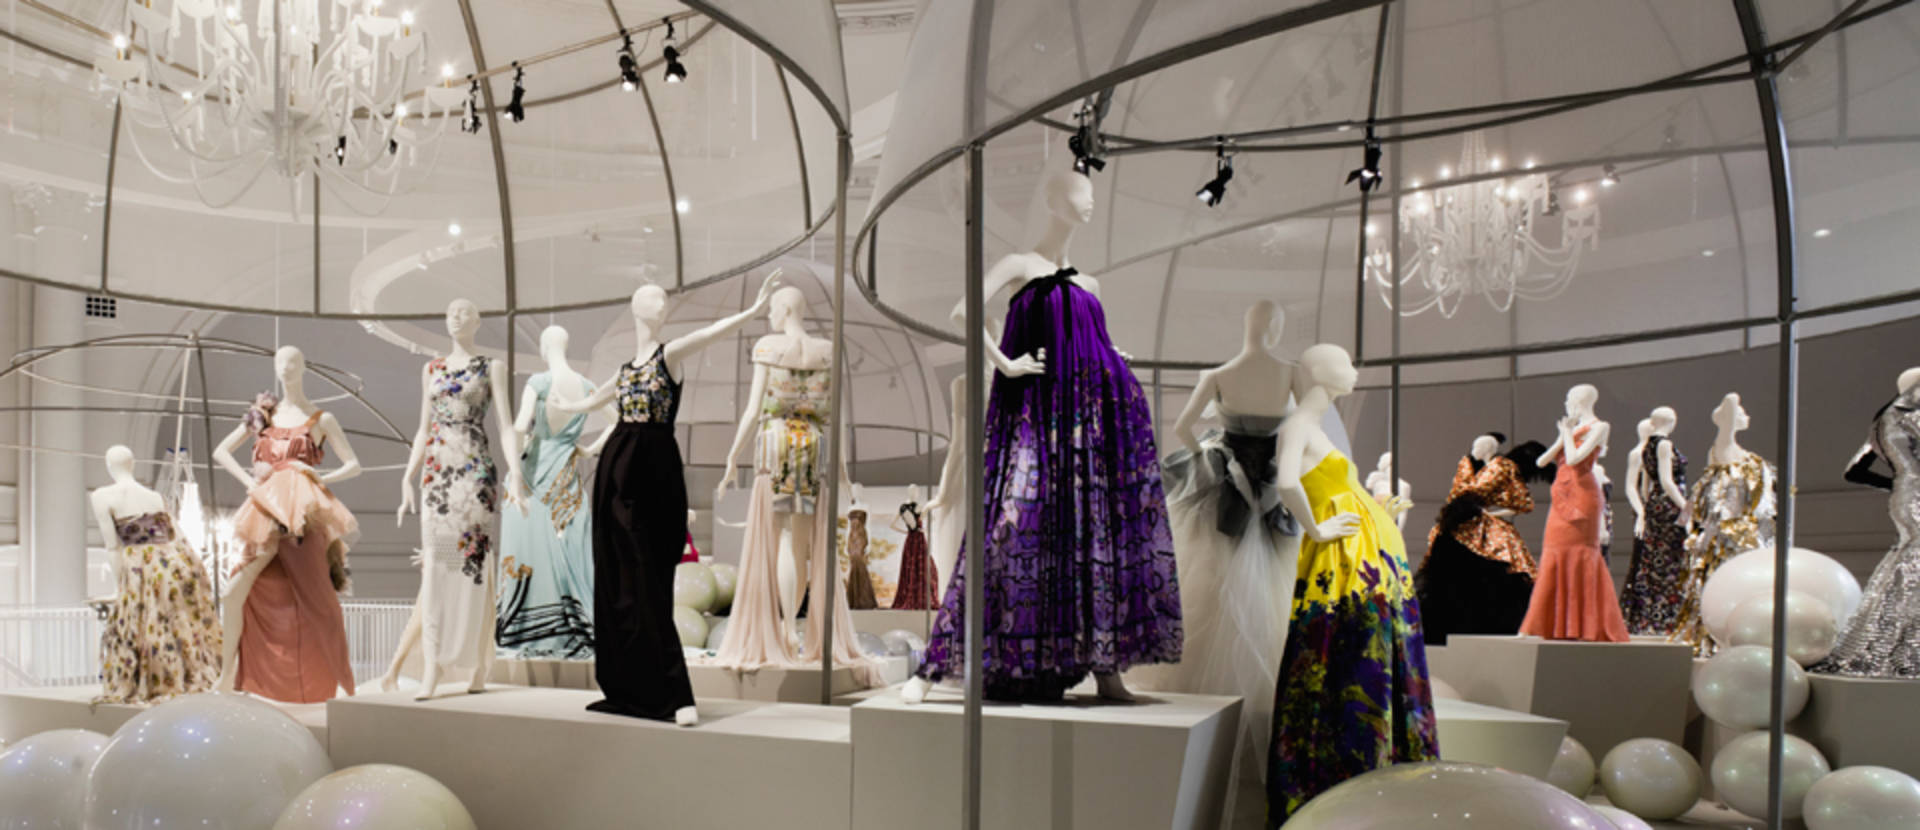 APPG FOR TEXTILES AND FASHION: GLOBAL BRITAIN, LOCAL STORIES - Thursday, 18th of July12pm - 4pmVictoria and Albert Museum